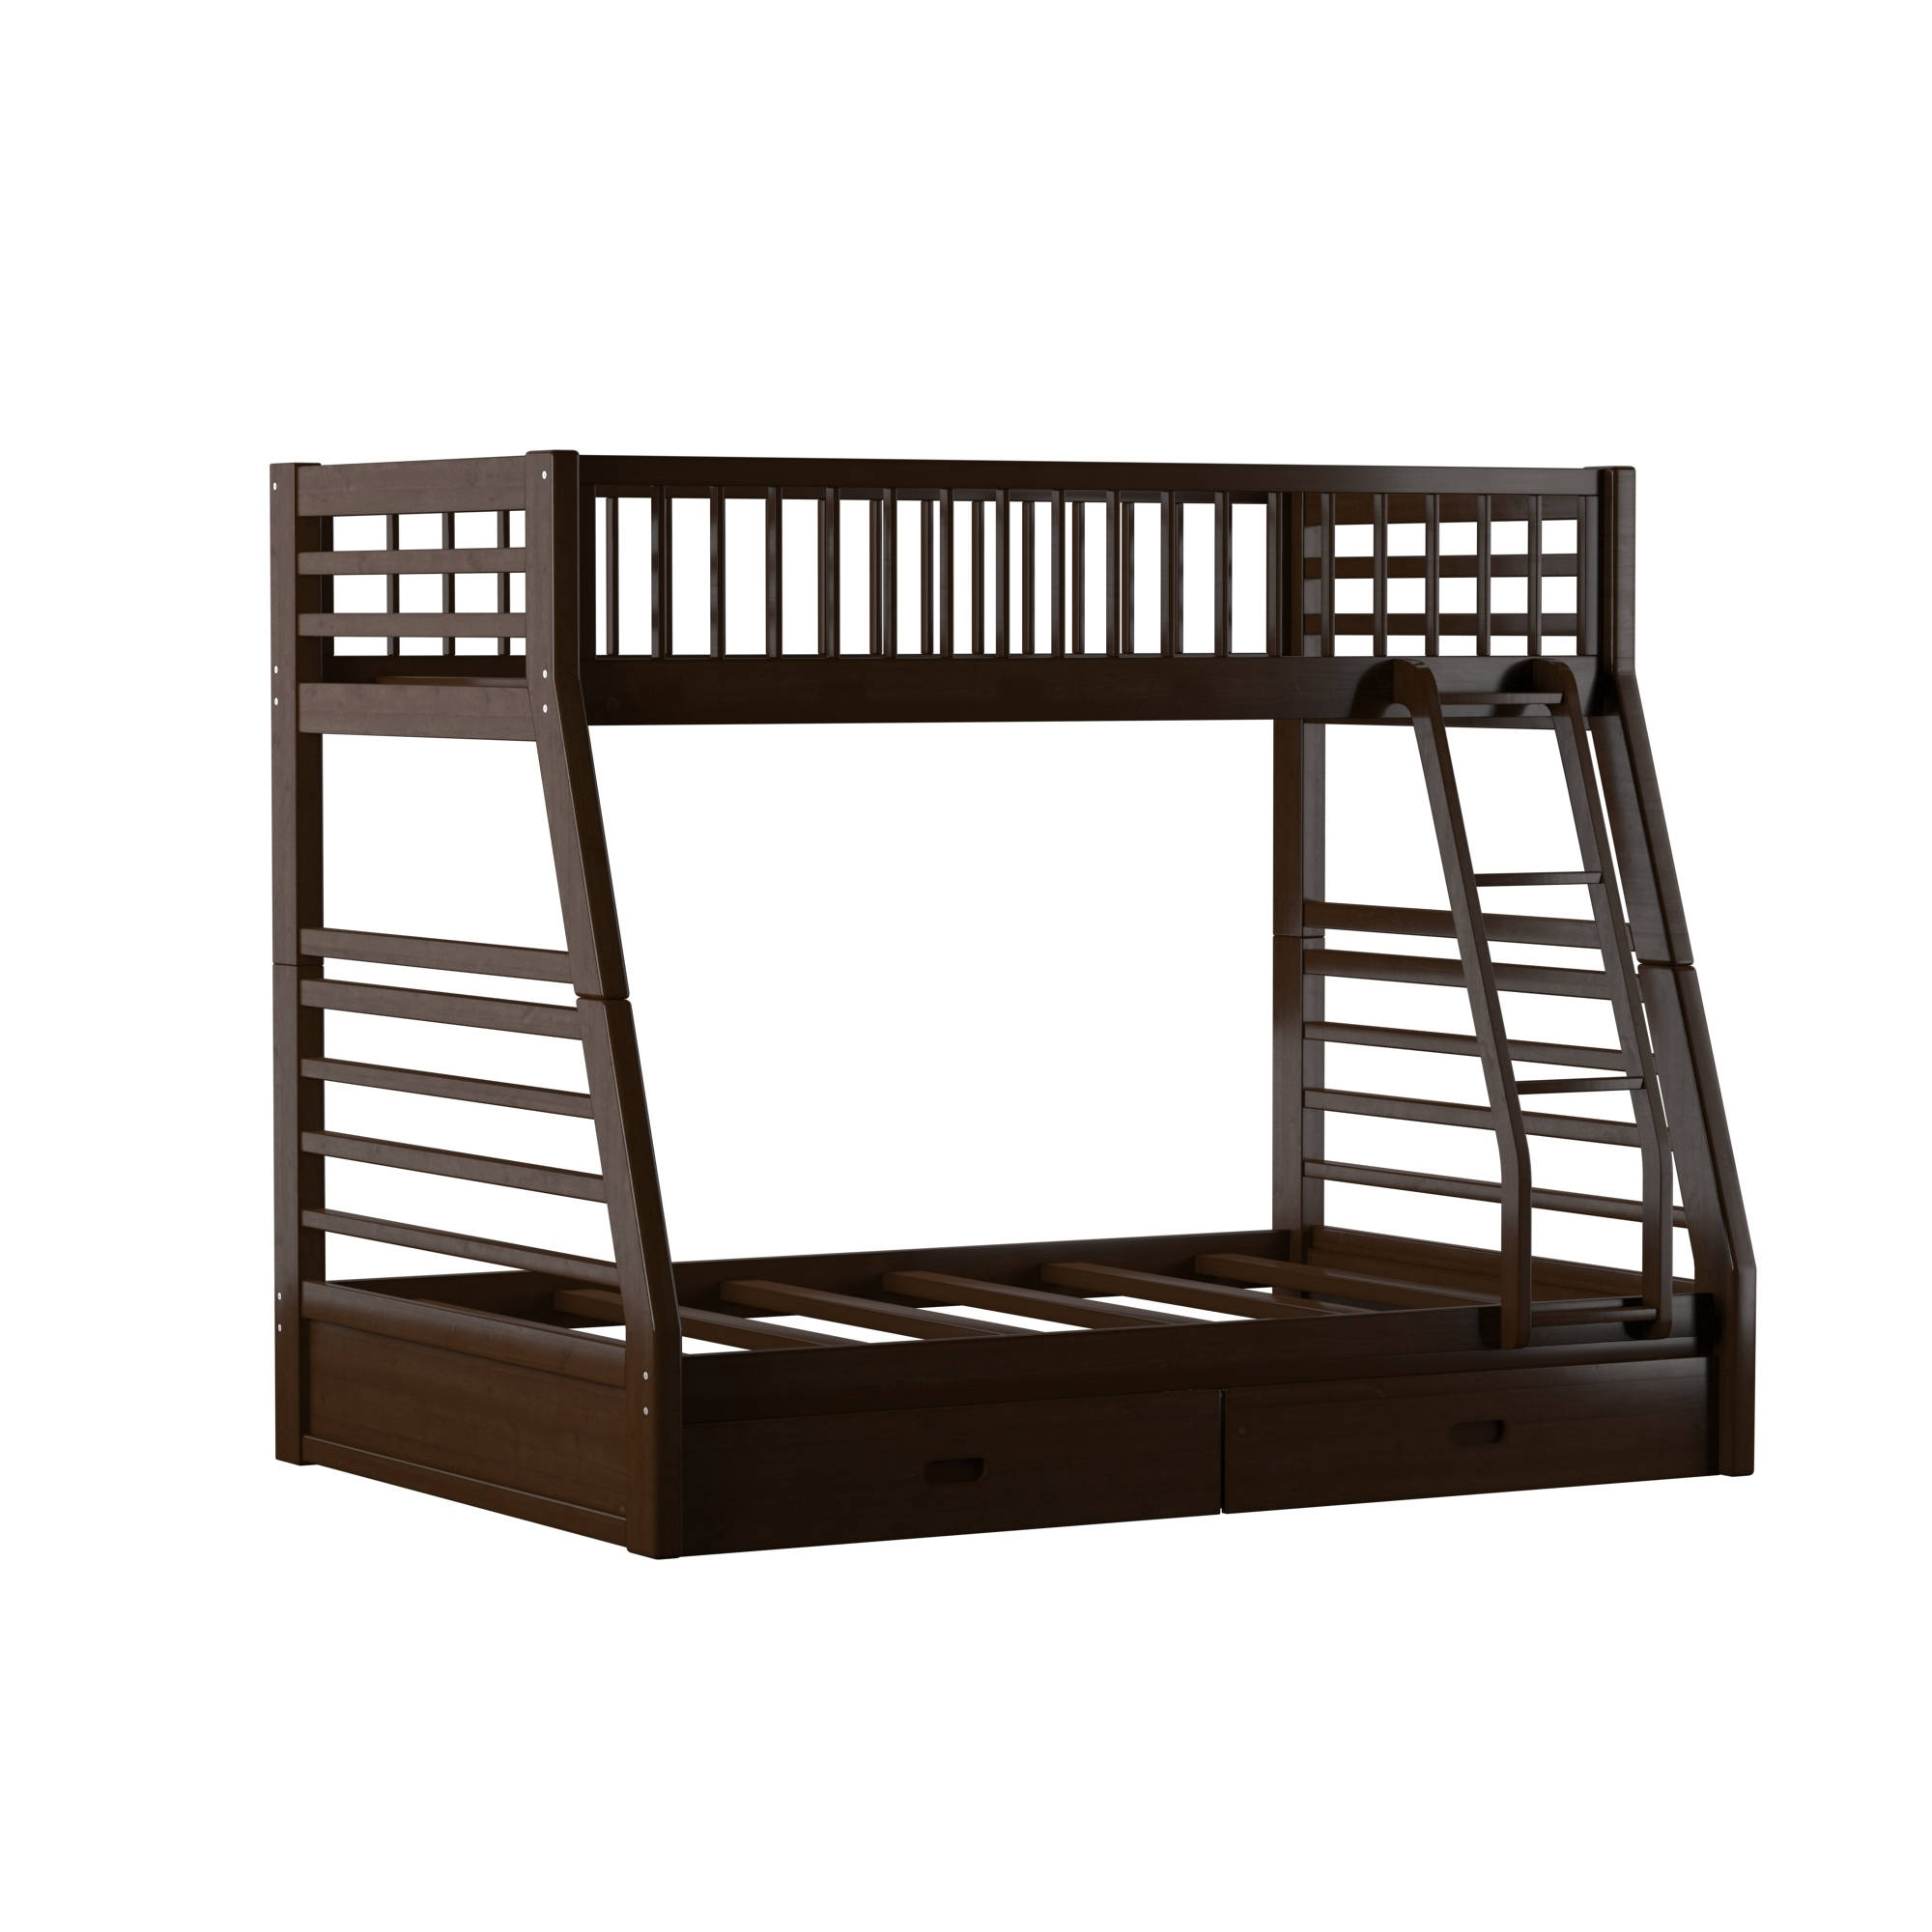 Acme Furniture Jason Espresso Wood Twin Over Full Drawers Bunk Bed